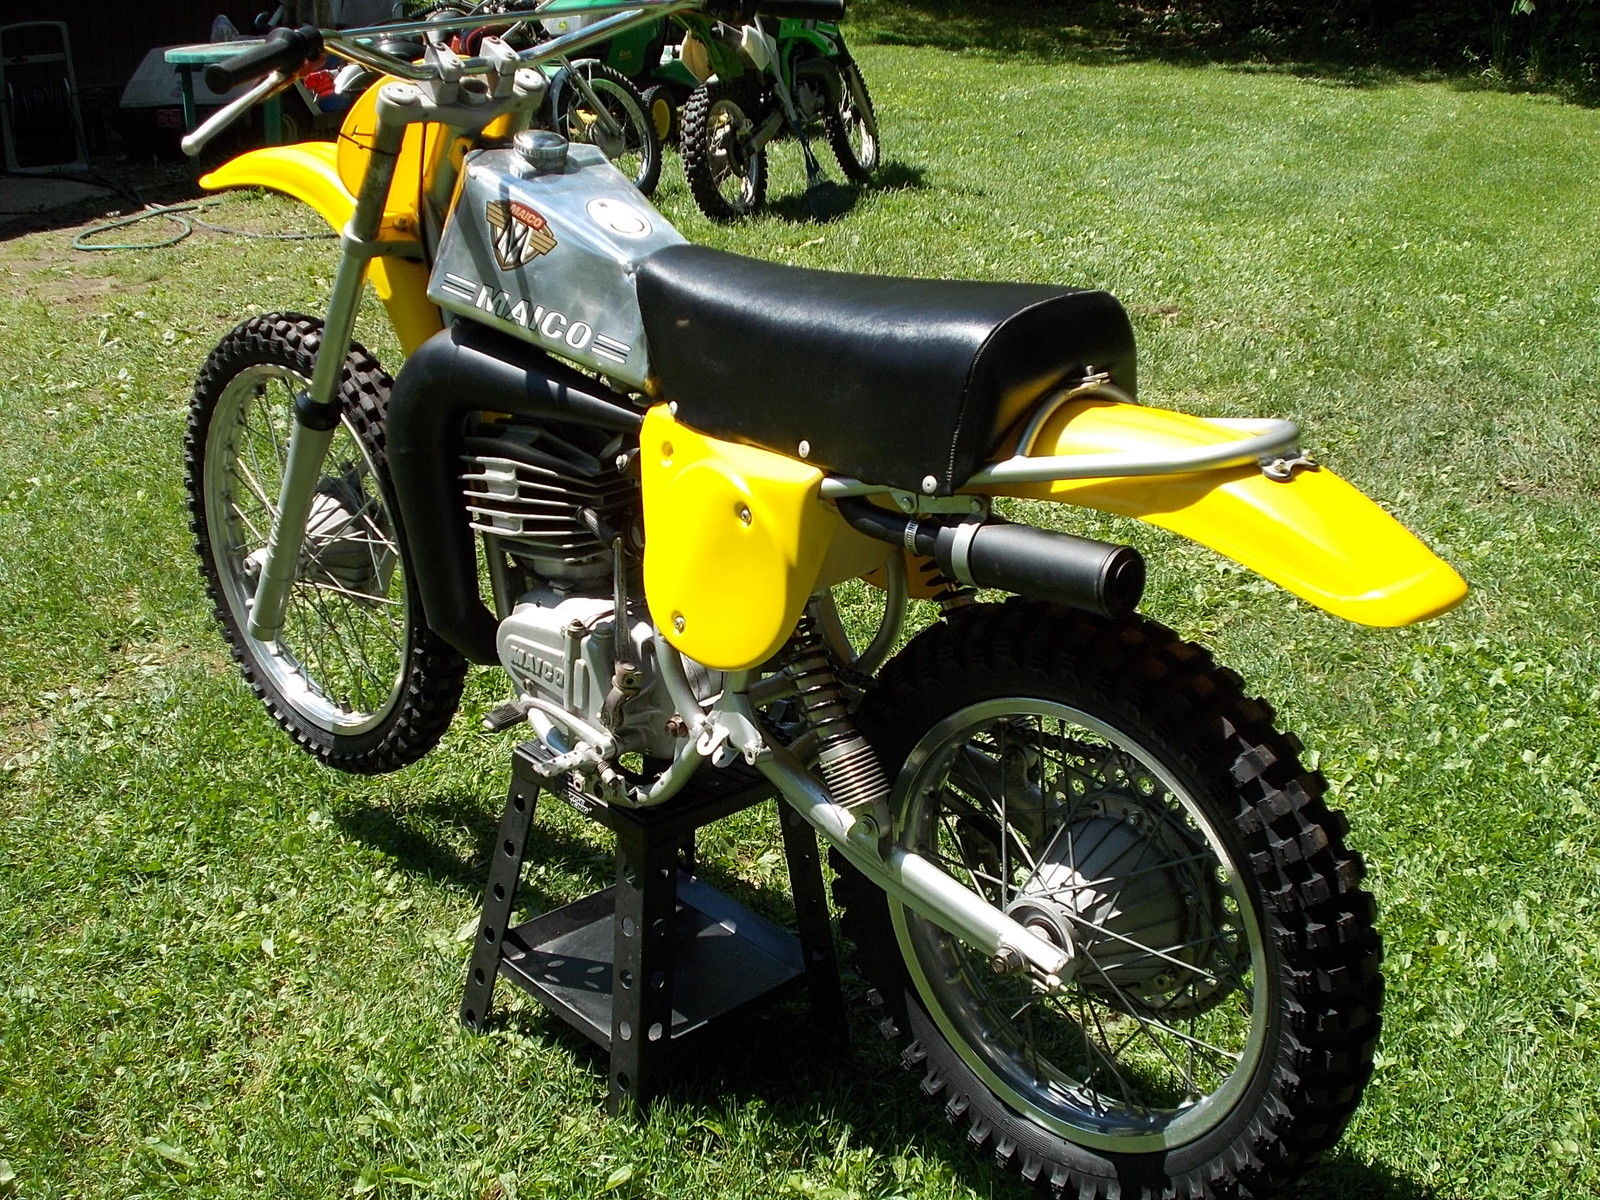 restored maico 250aw 1976 photographs at classic bikes. Black Bedroom Furniture Sets. Home Design Ideas